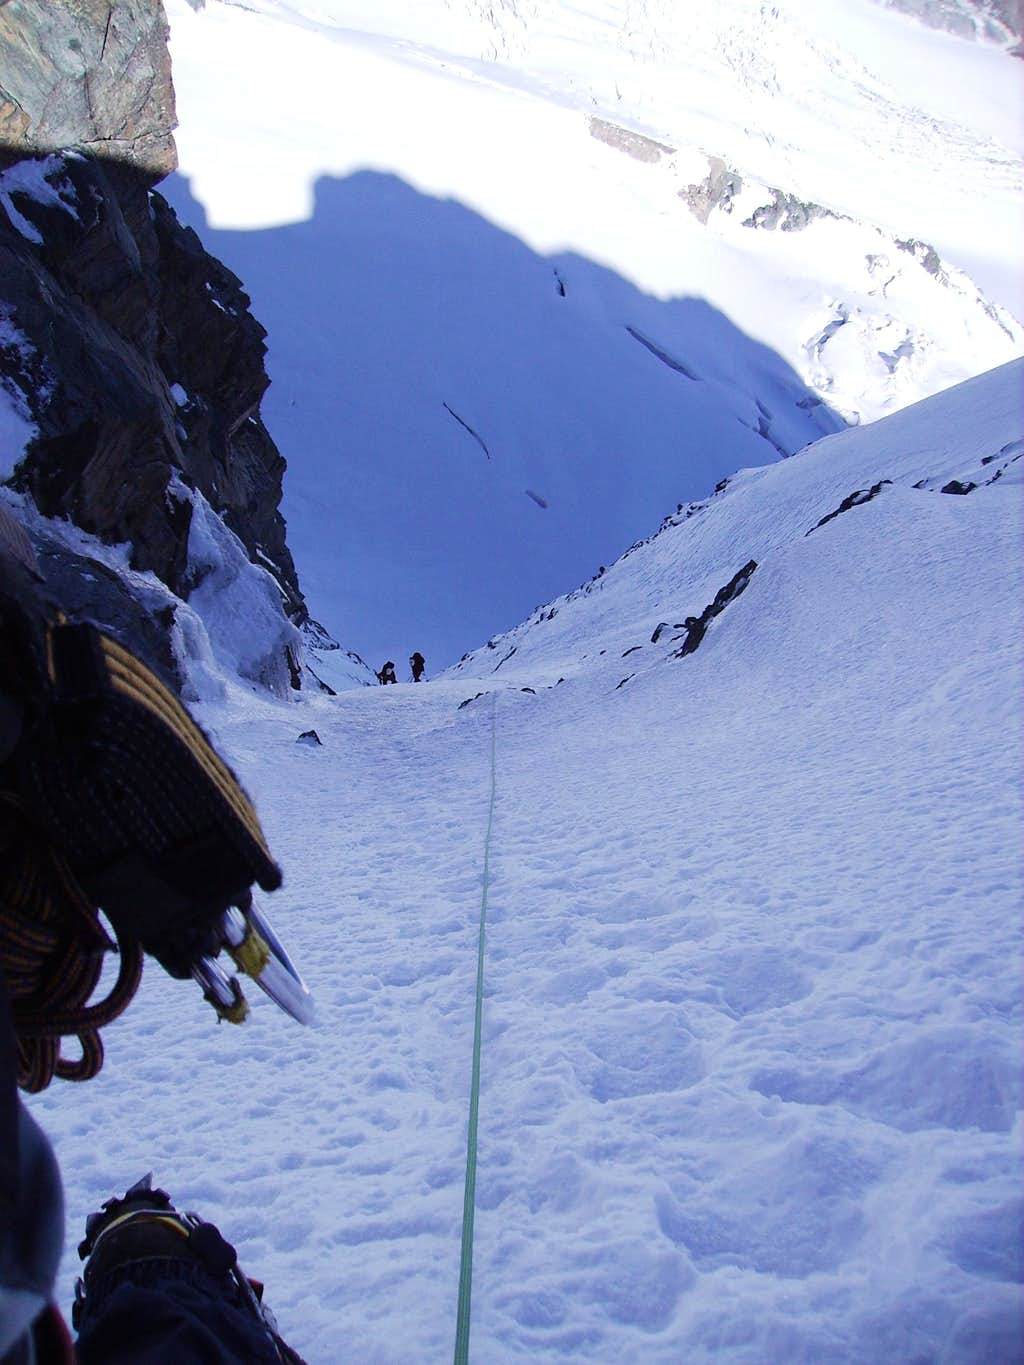 The last pitch in the Mayerlrampe